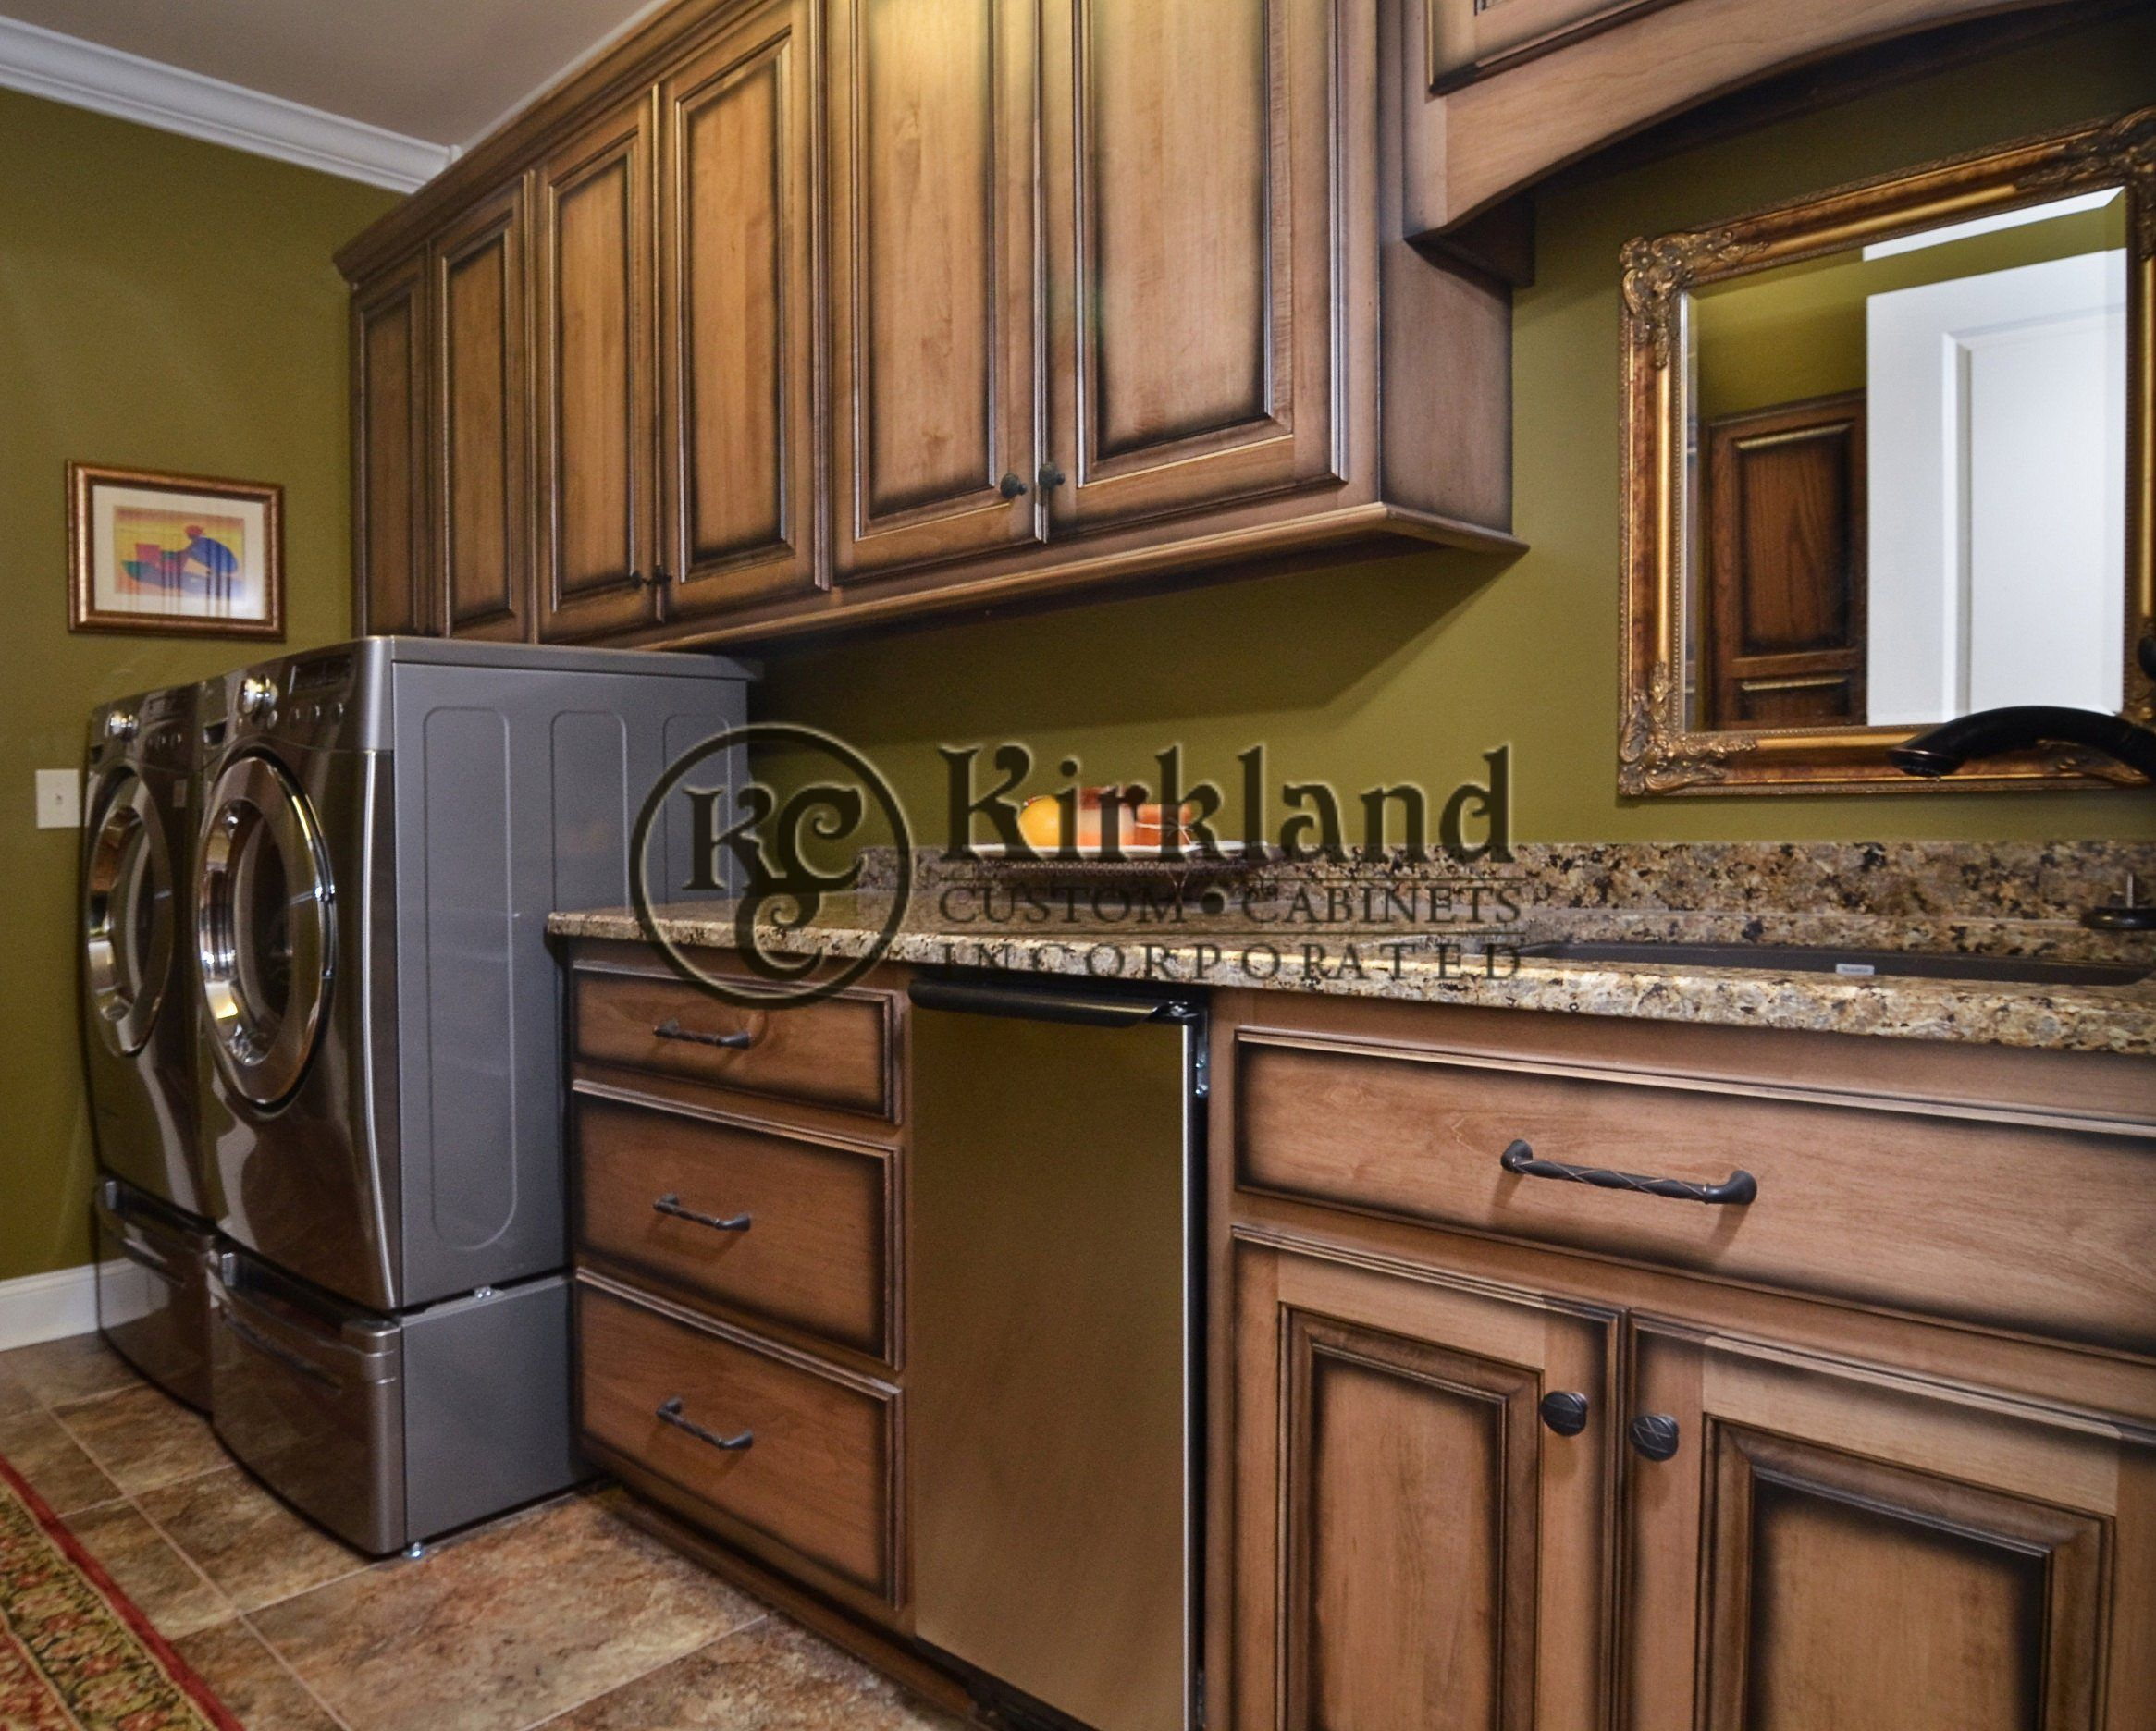 Laundry Room Cabinets Maple Wood With Coffee Stain And Black Glazing With Shading And D Kitchen Cabinet Styles Stained Kitchen Cabinets Glazed Kitchen Cabinets